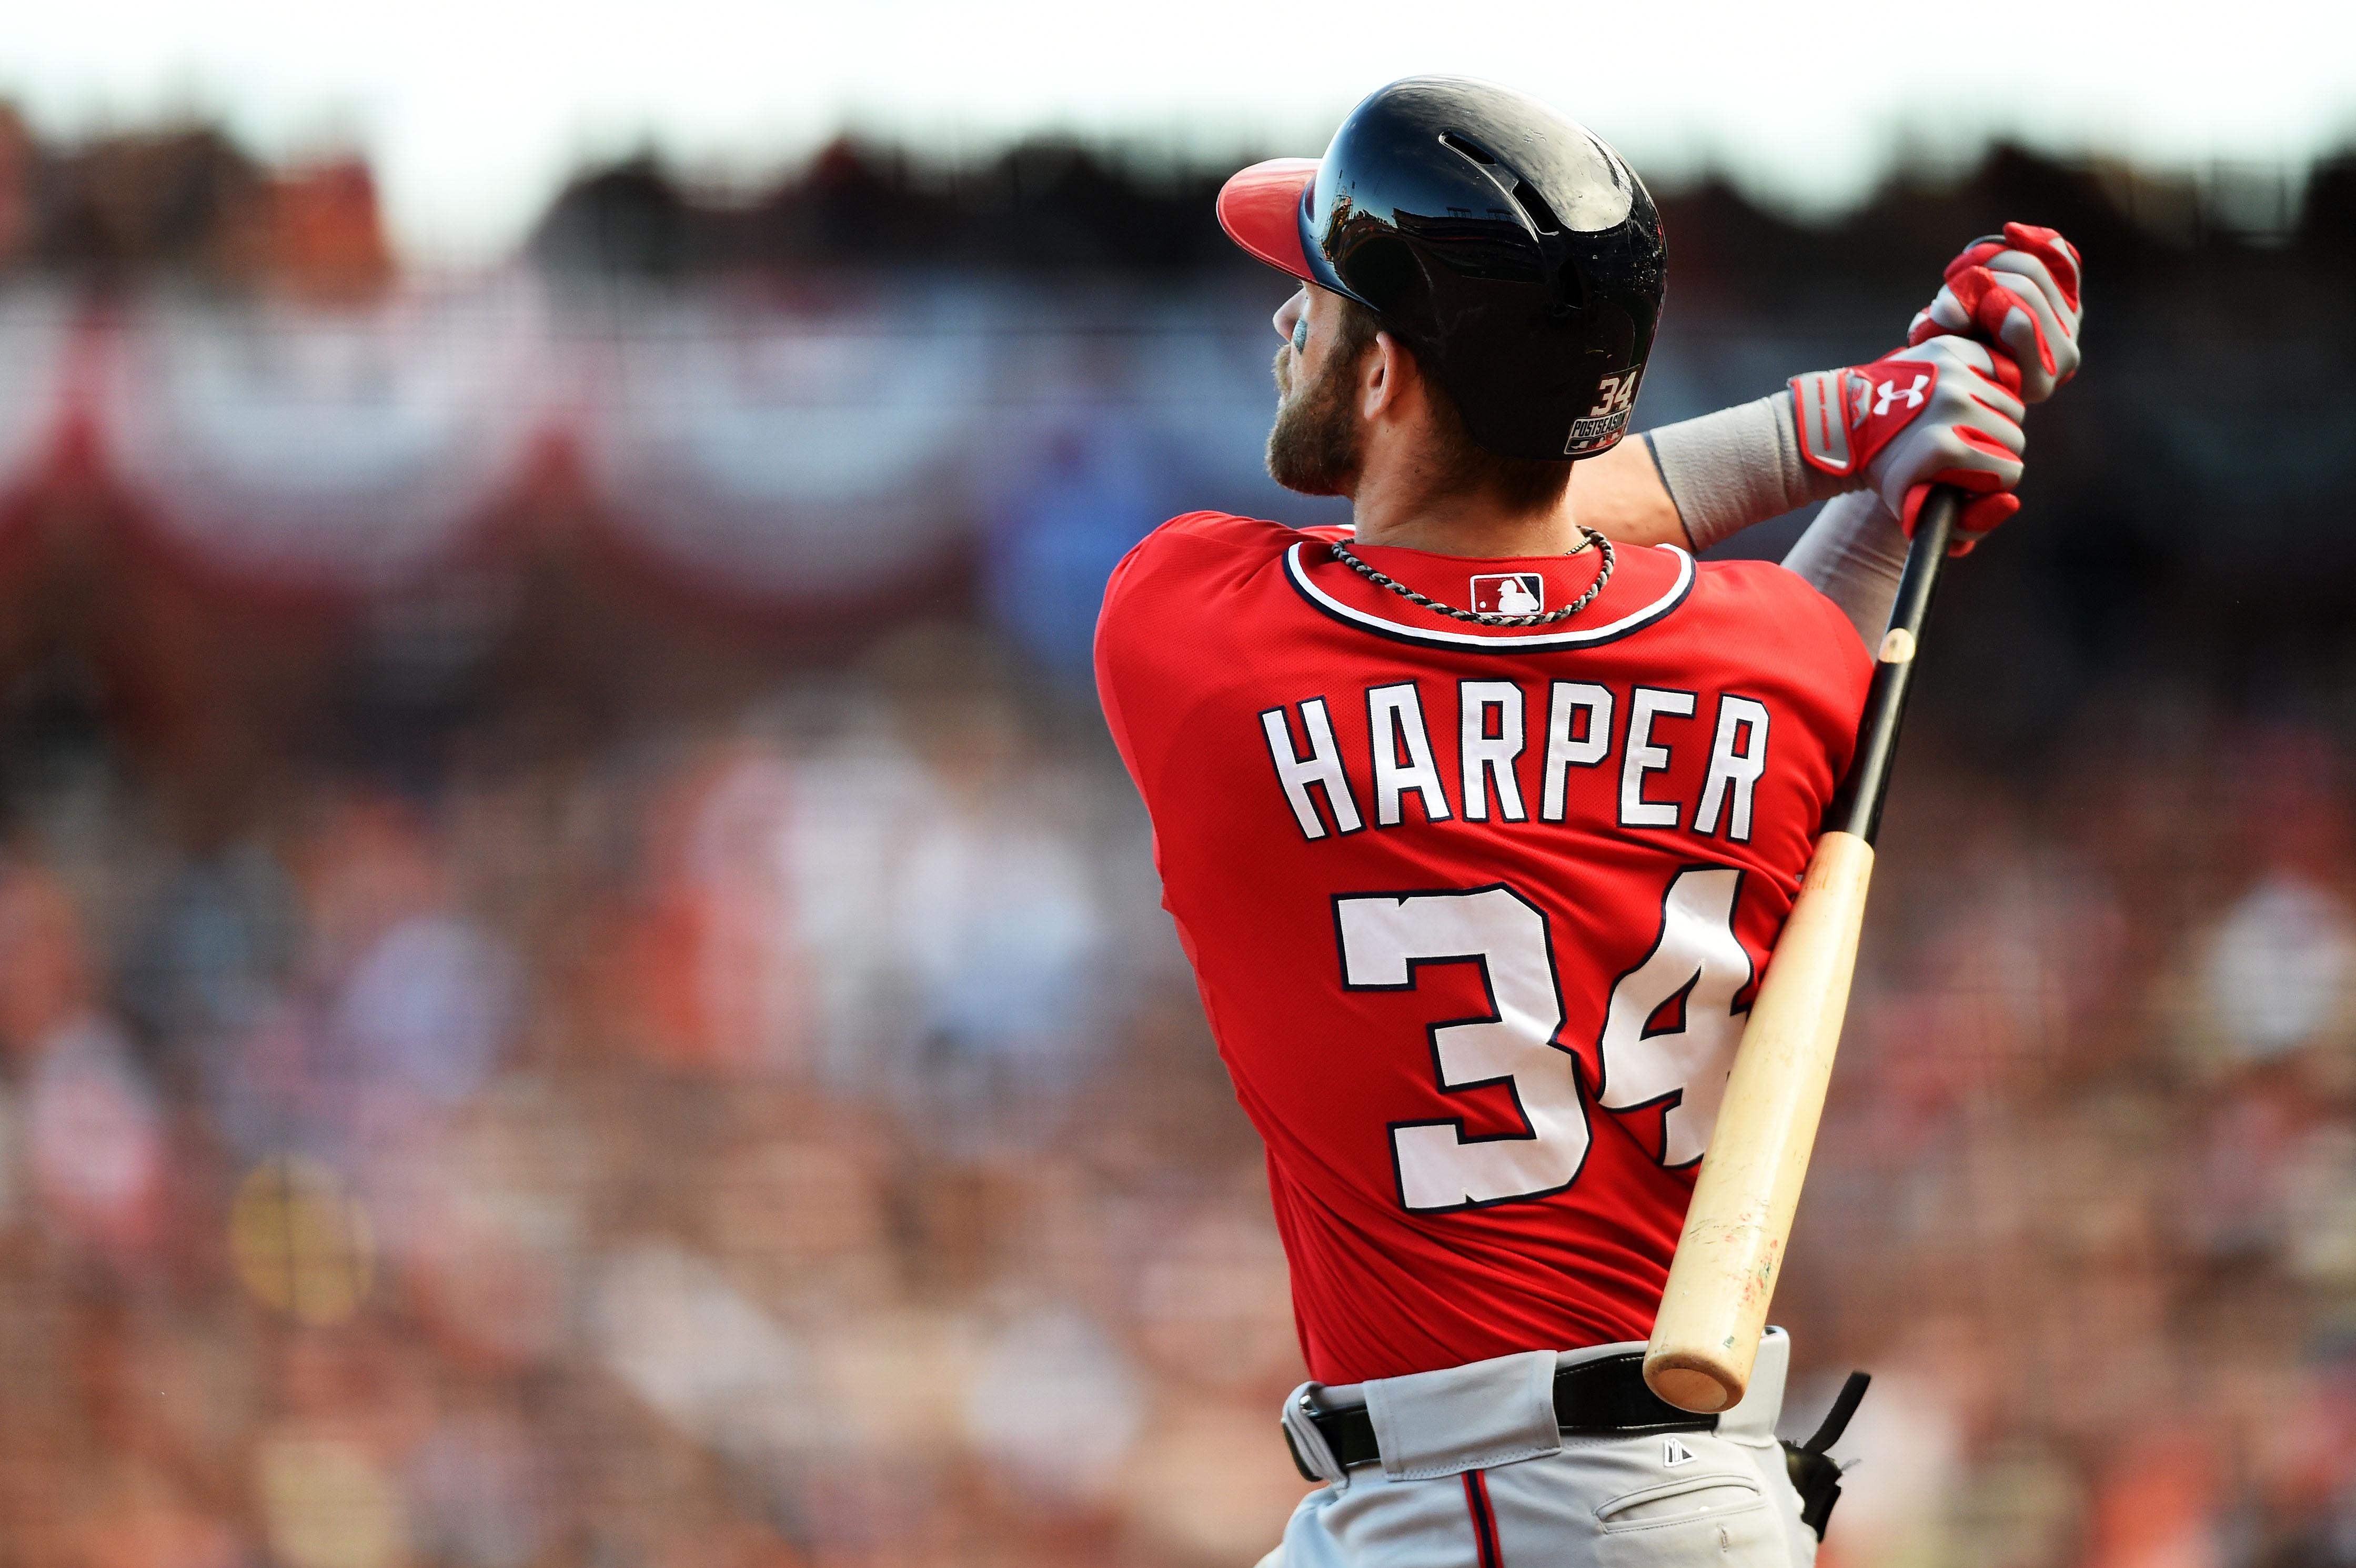 Under Armour signs reigning MVP Bryce Harper to multi-year extension